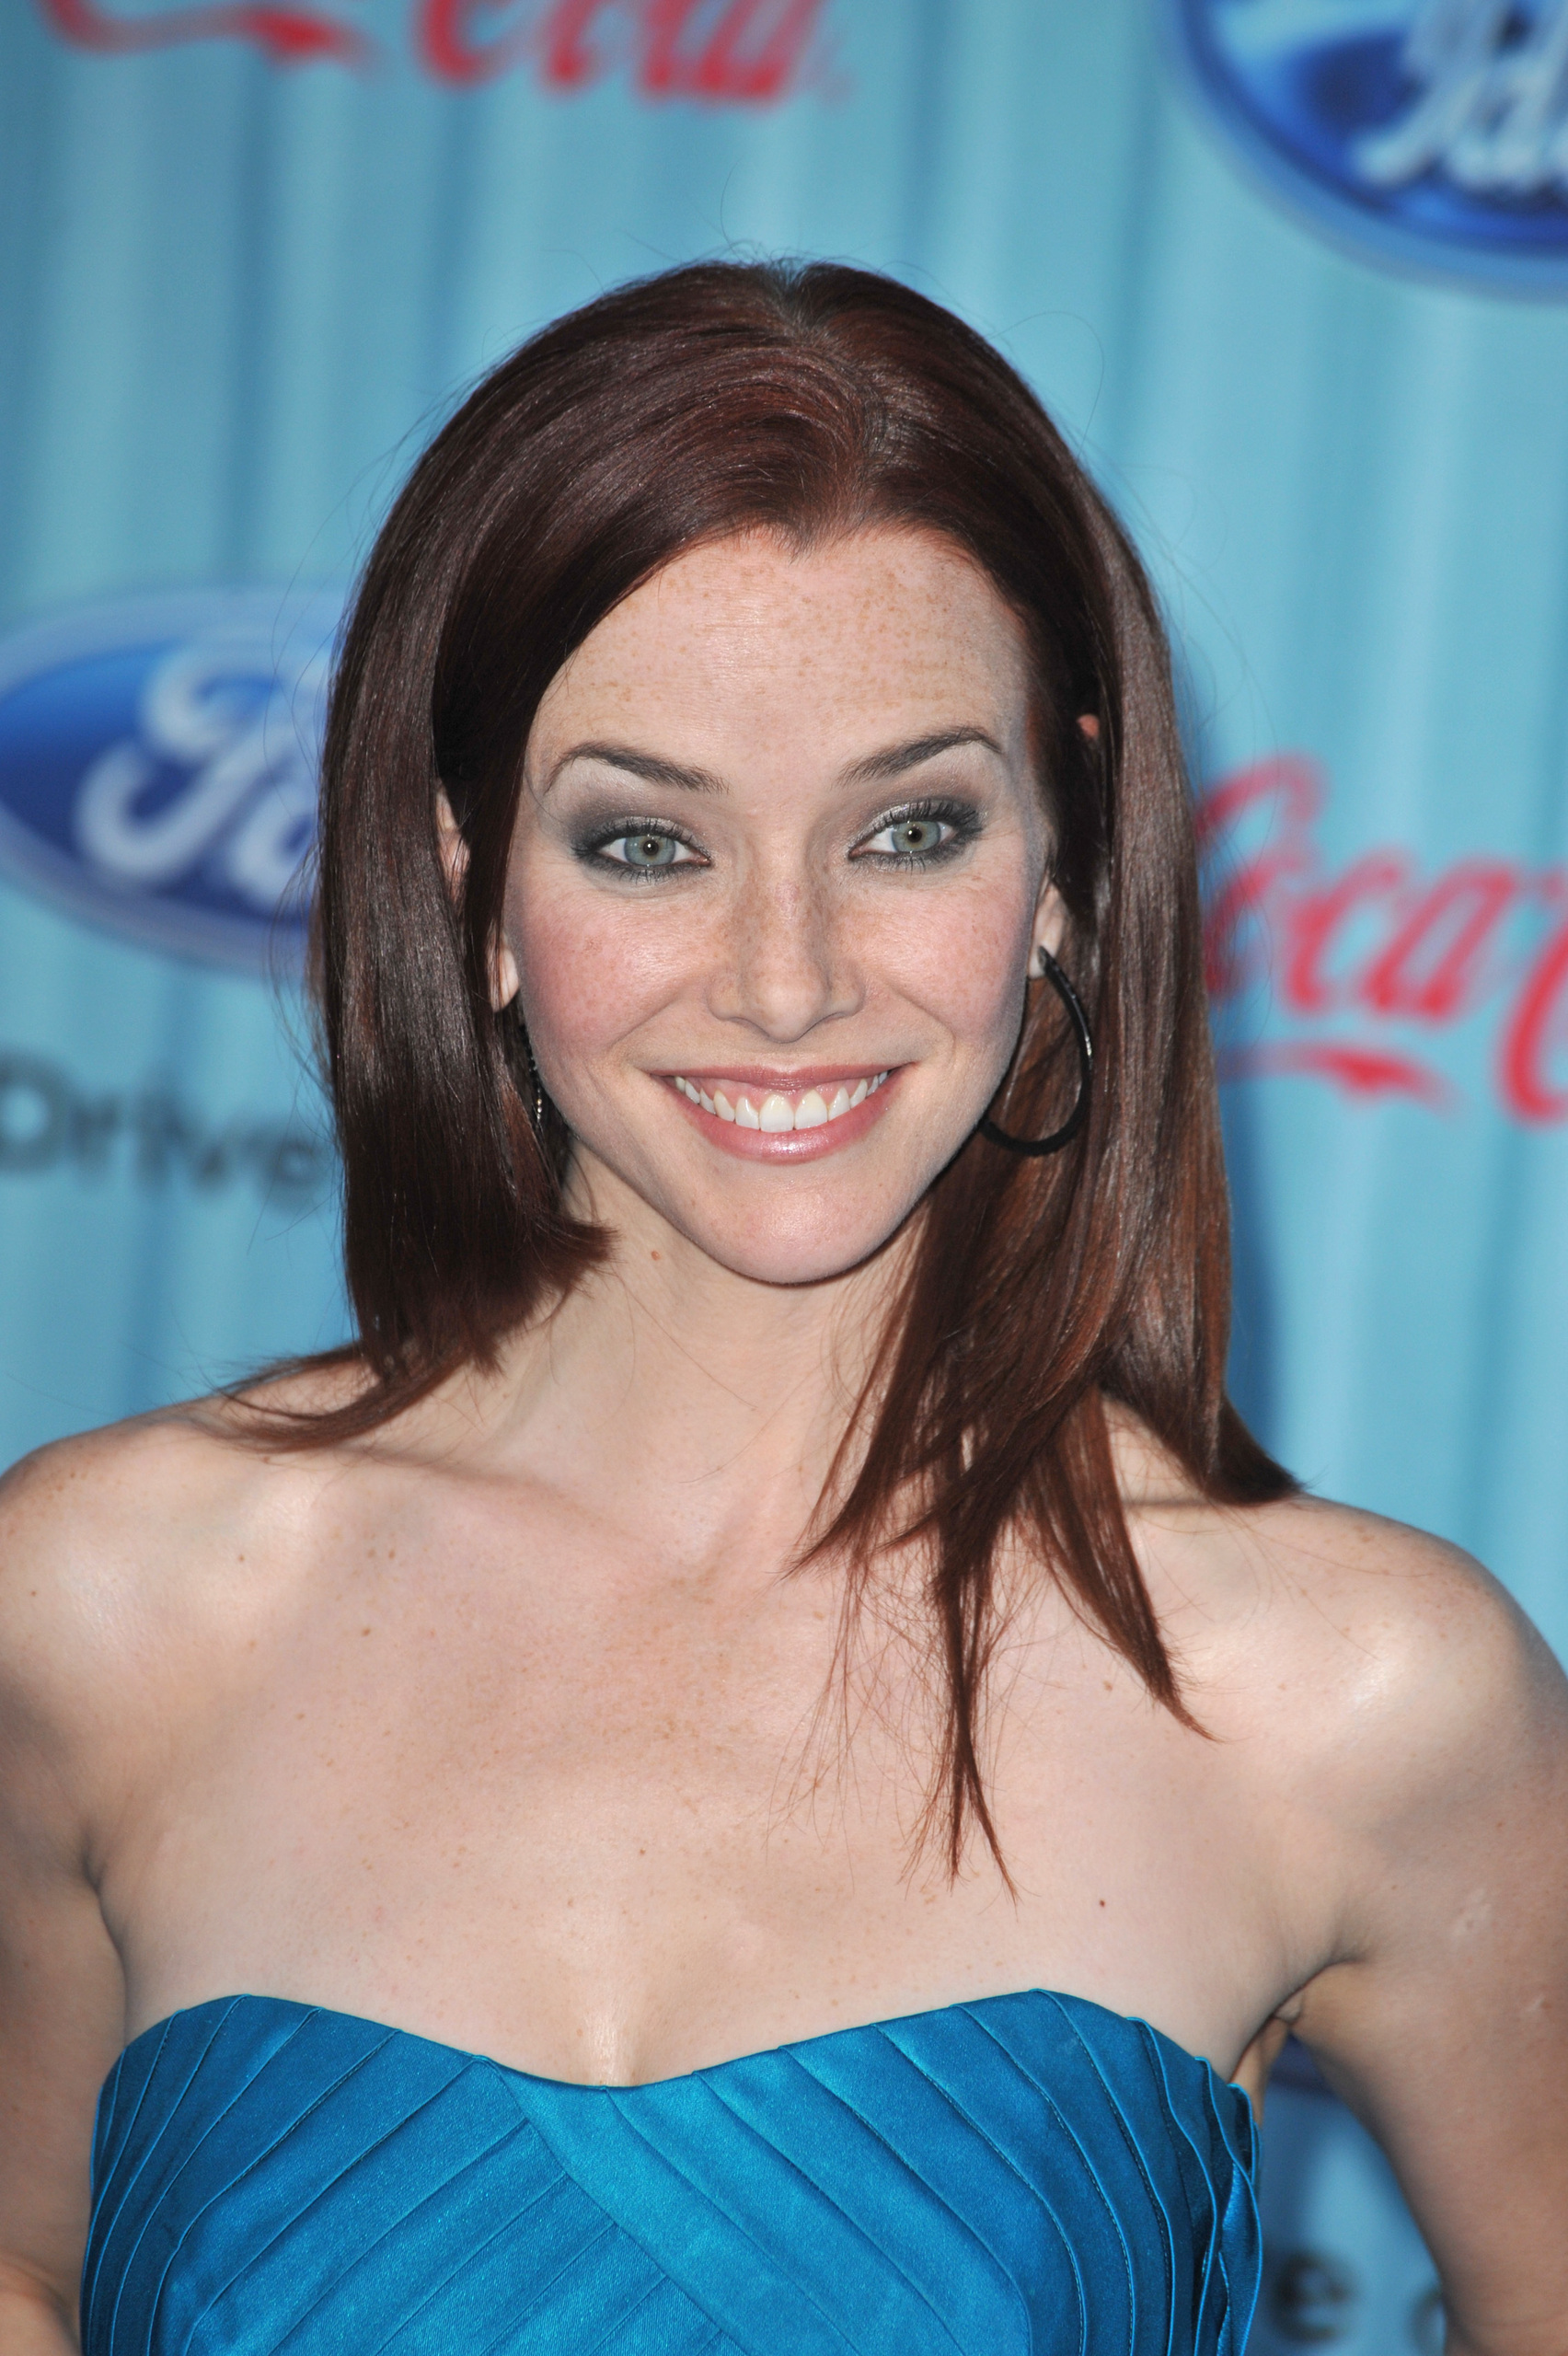 annie wersching - photo #16